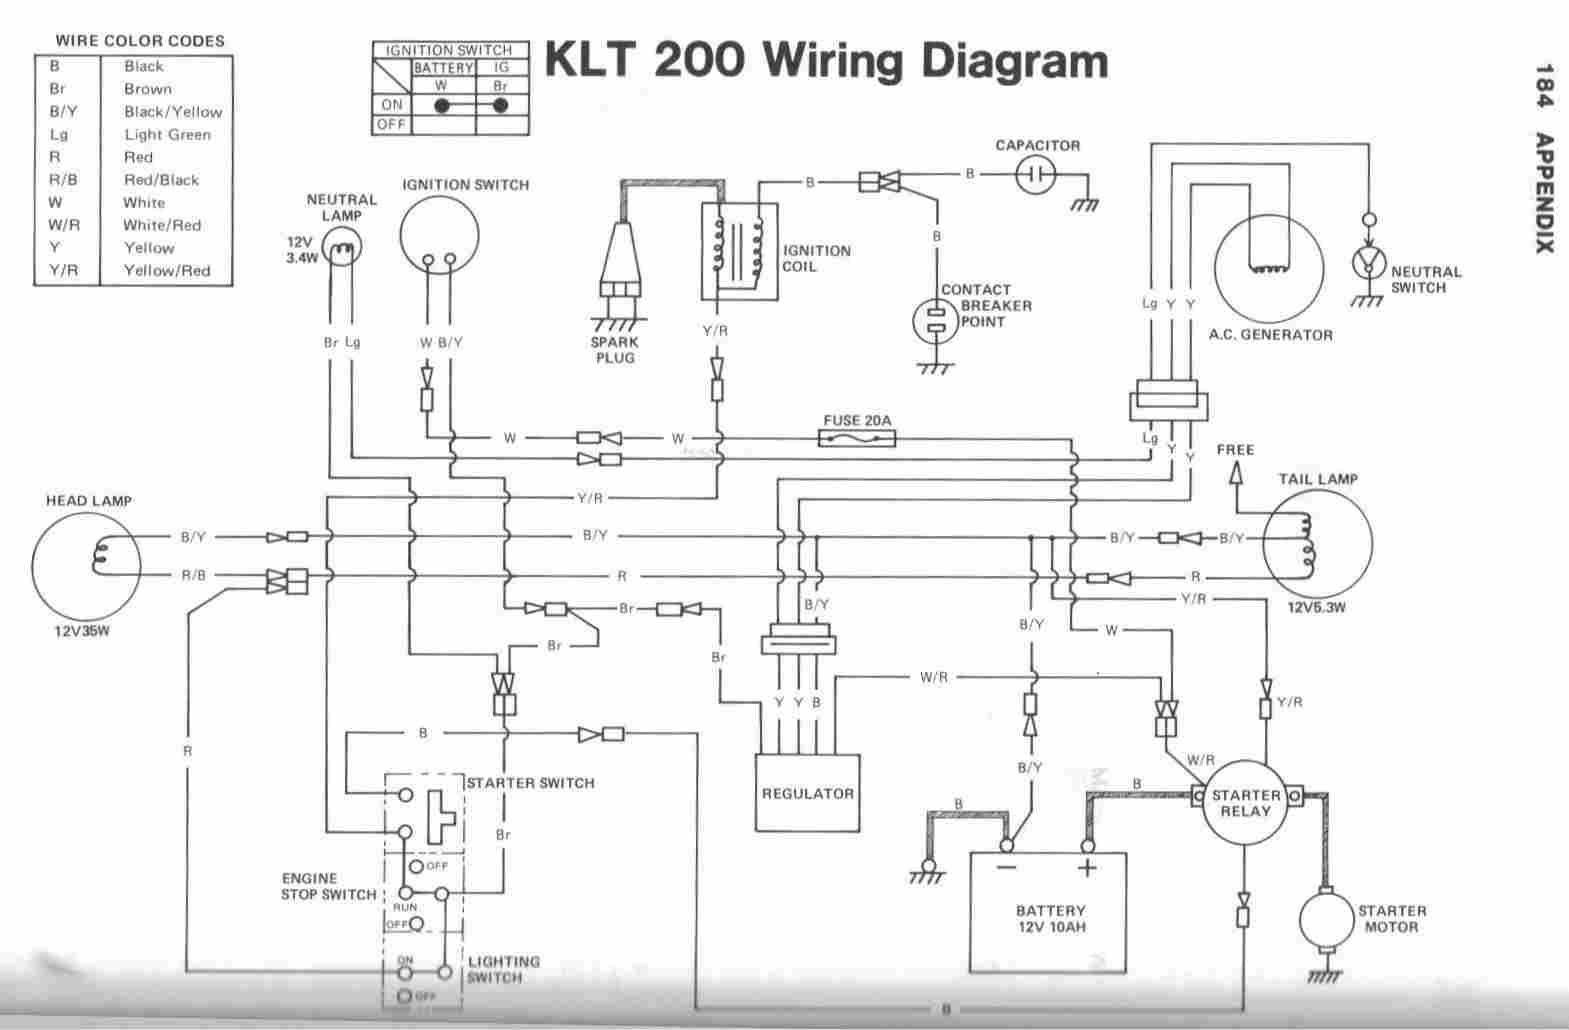 Electrical House Wiring Diagram from cdn.jhmrad.com